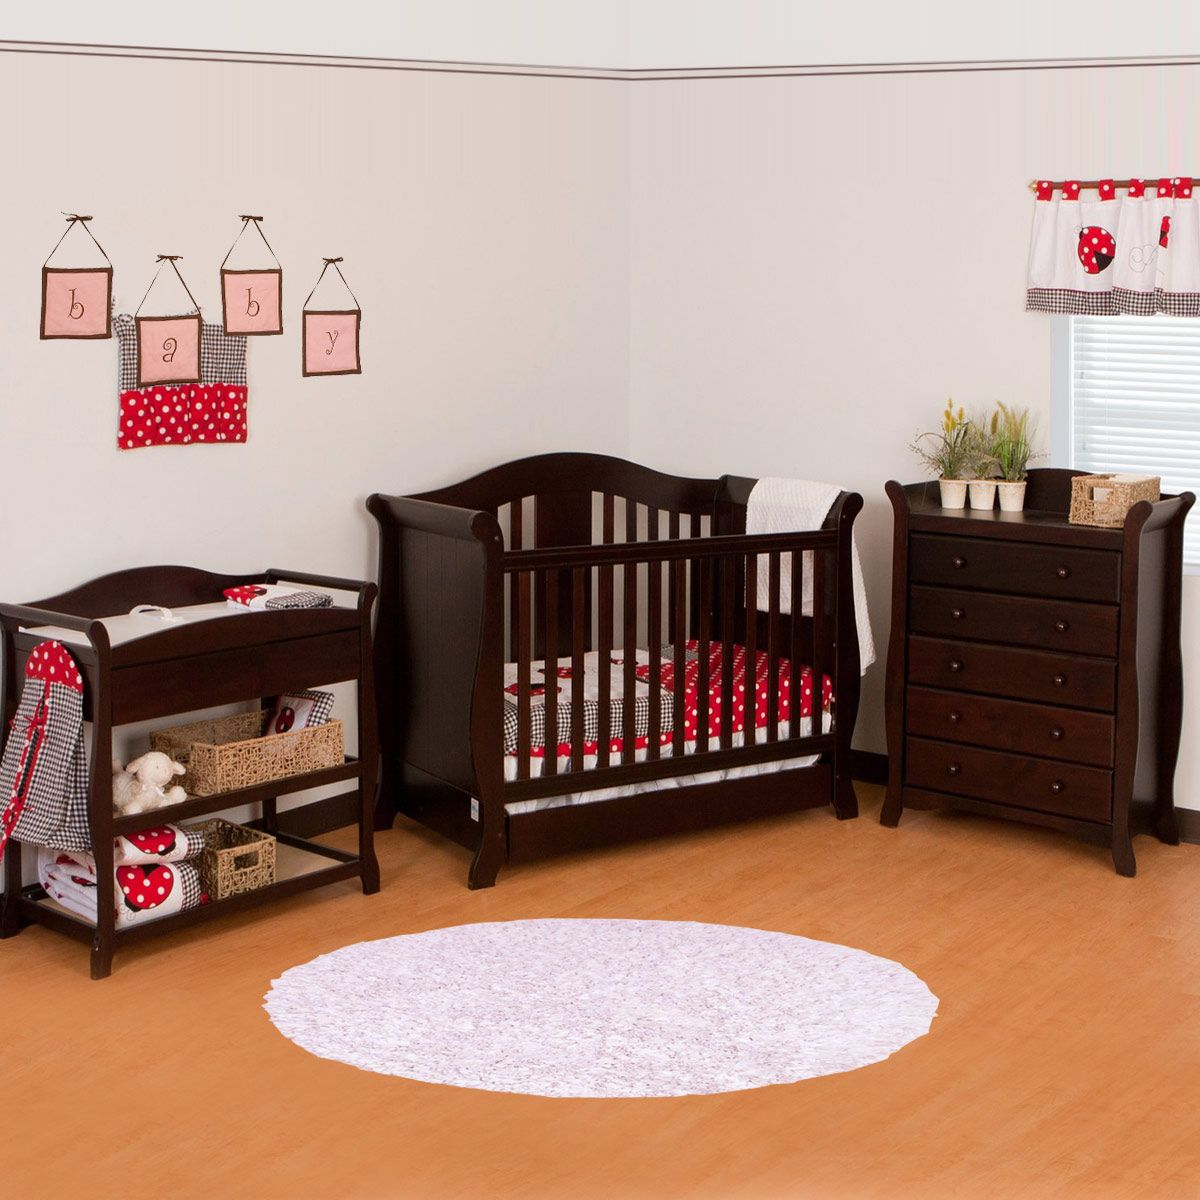 Pin On Cribs Changing Tables And Rocking Chairs